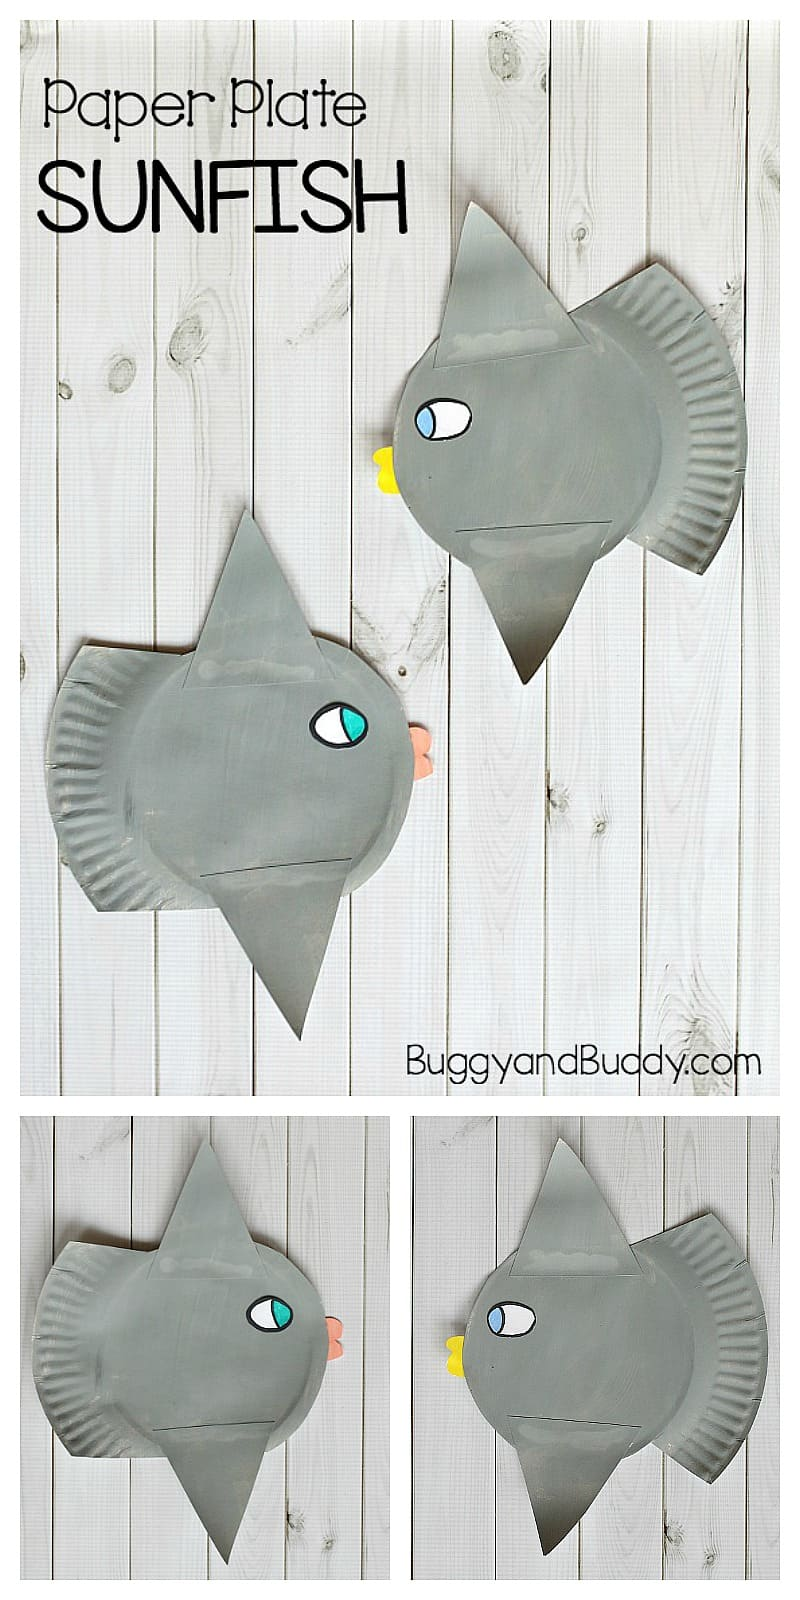 paper plate sunfish craft for kids- sunfish or mola fish